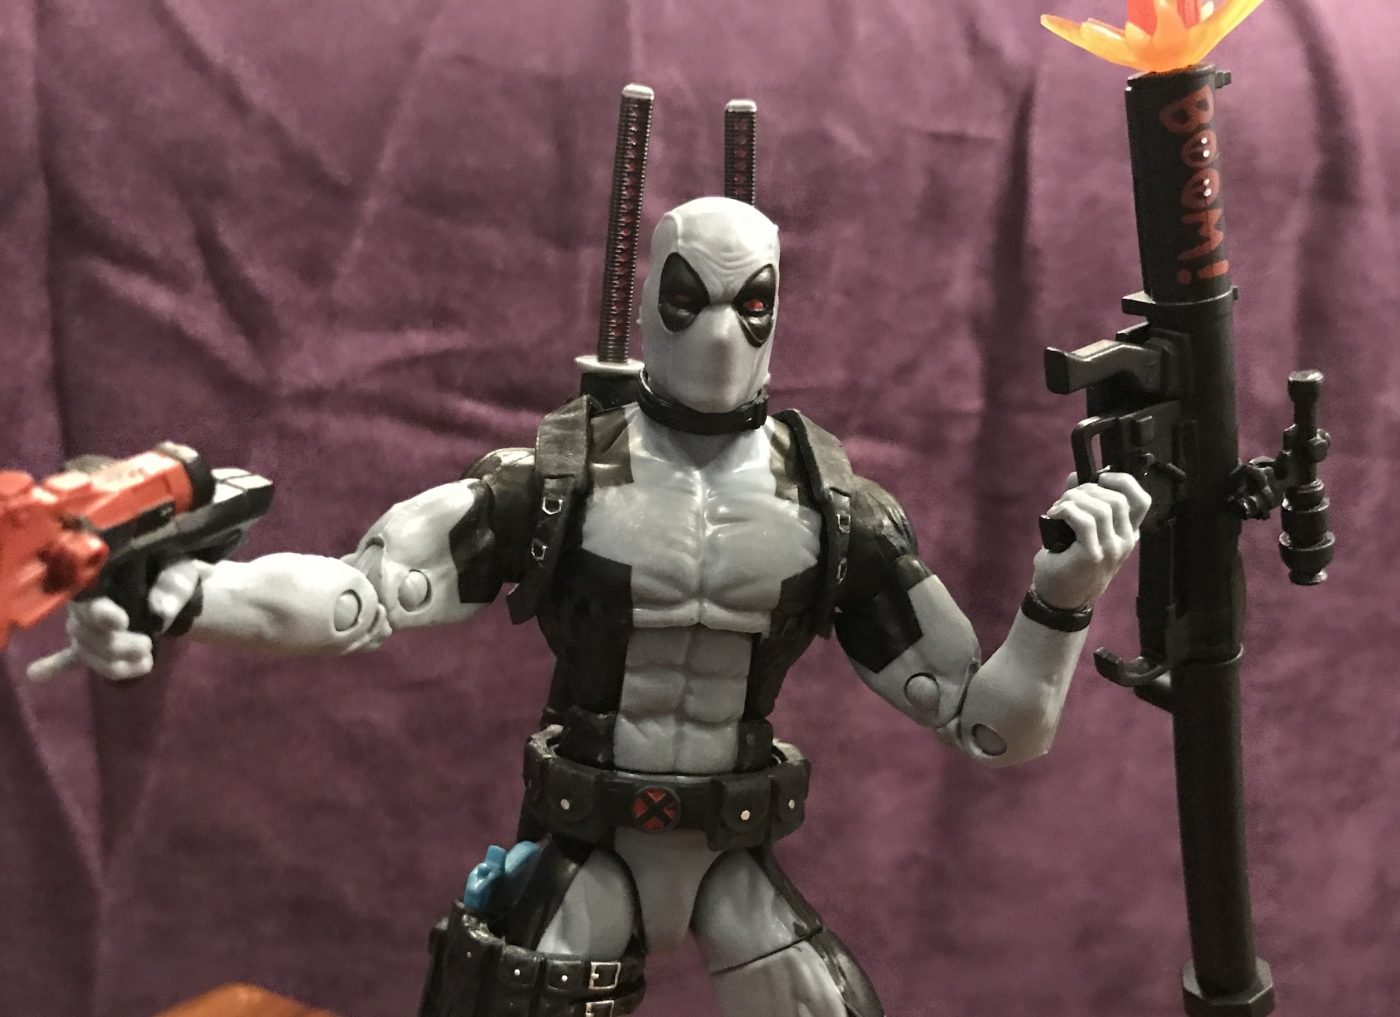 We review the HASCON exclusive Marvel Legends X-Force Deadpool.